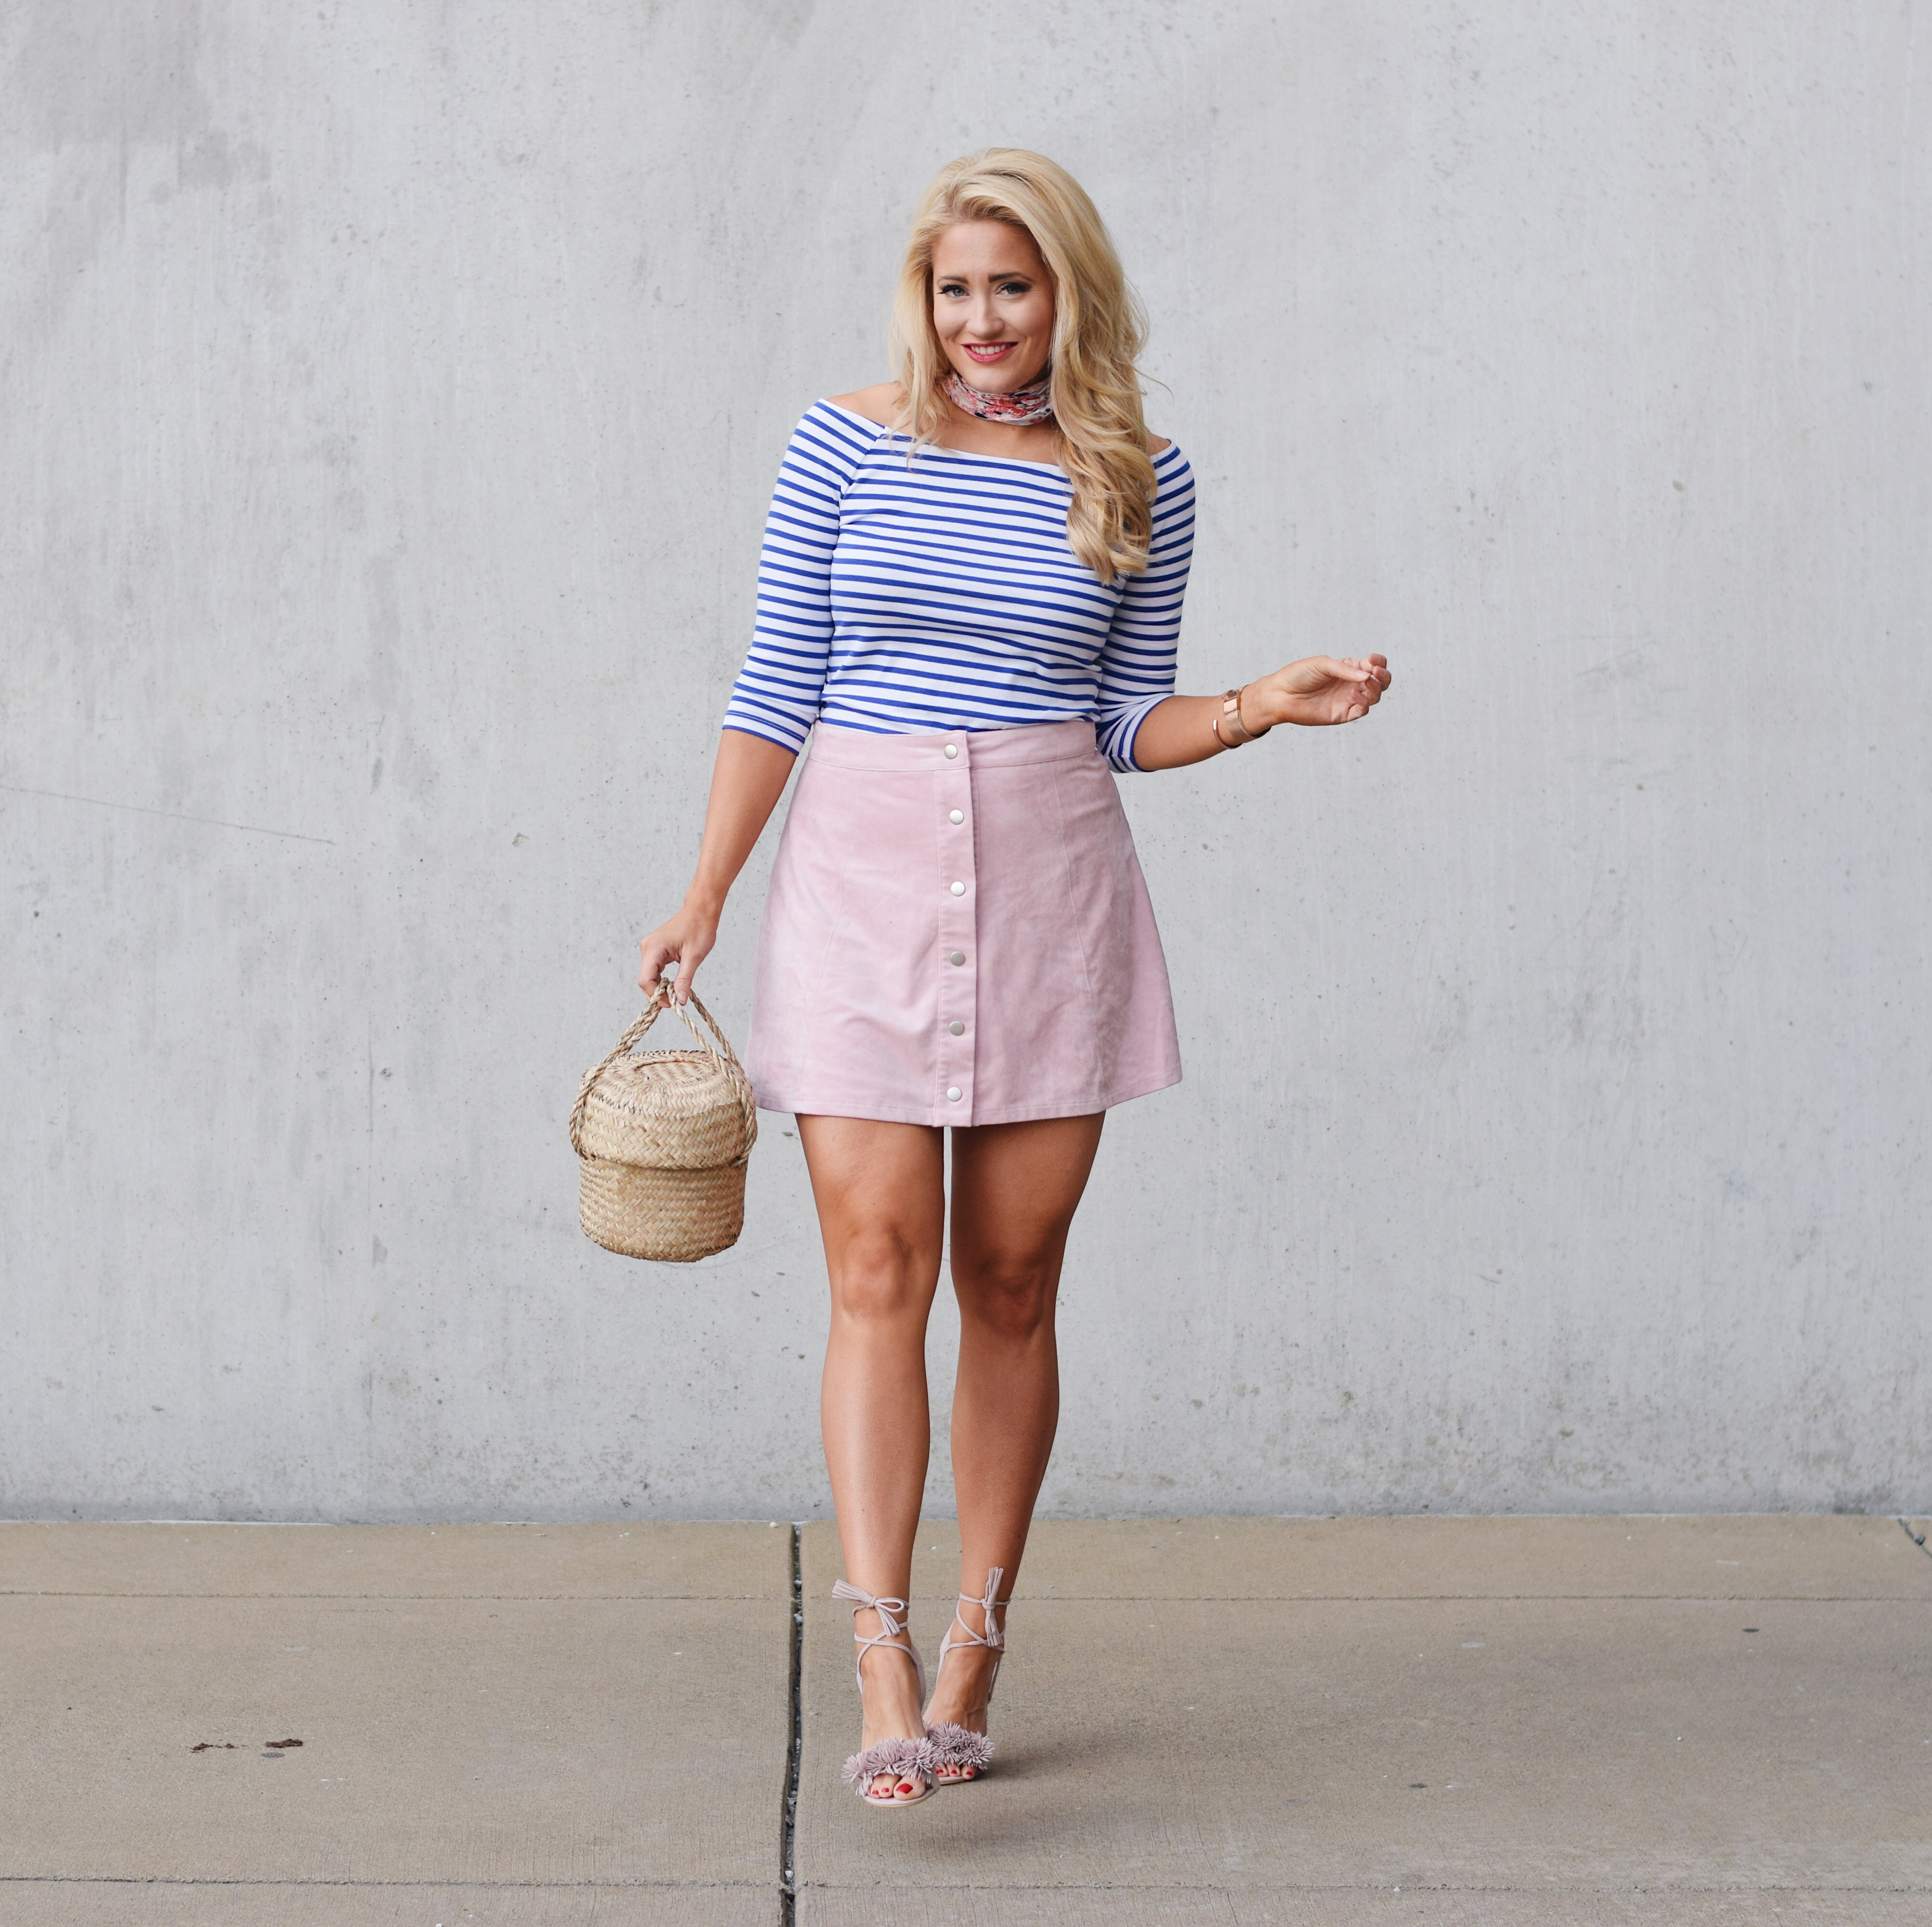 BLUSH SUEDE + BLUE STRIPES